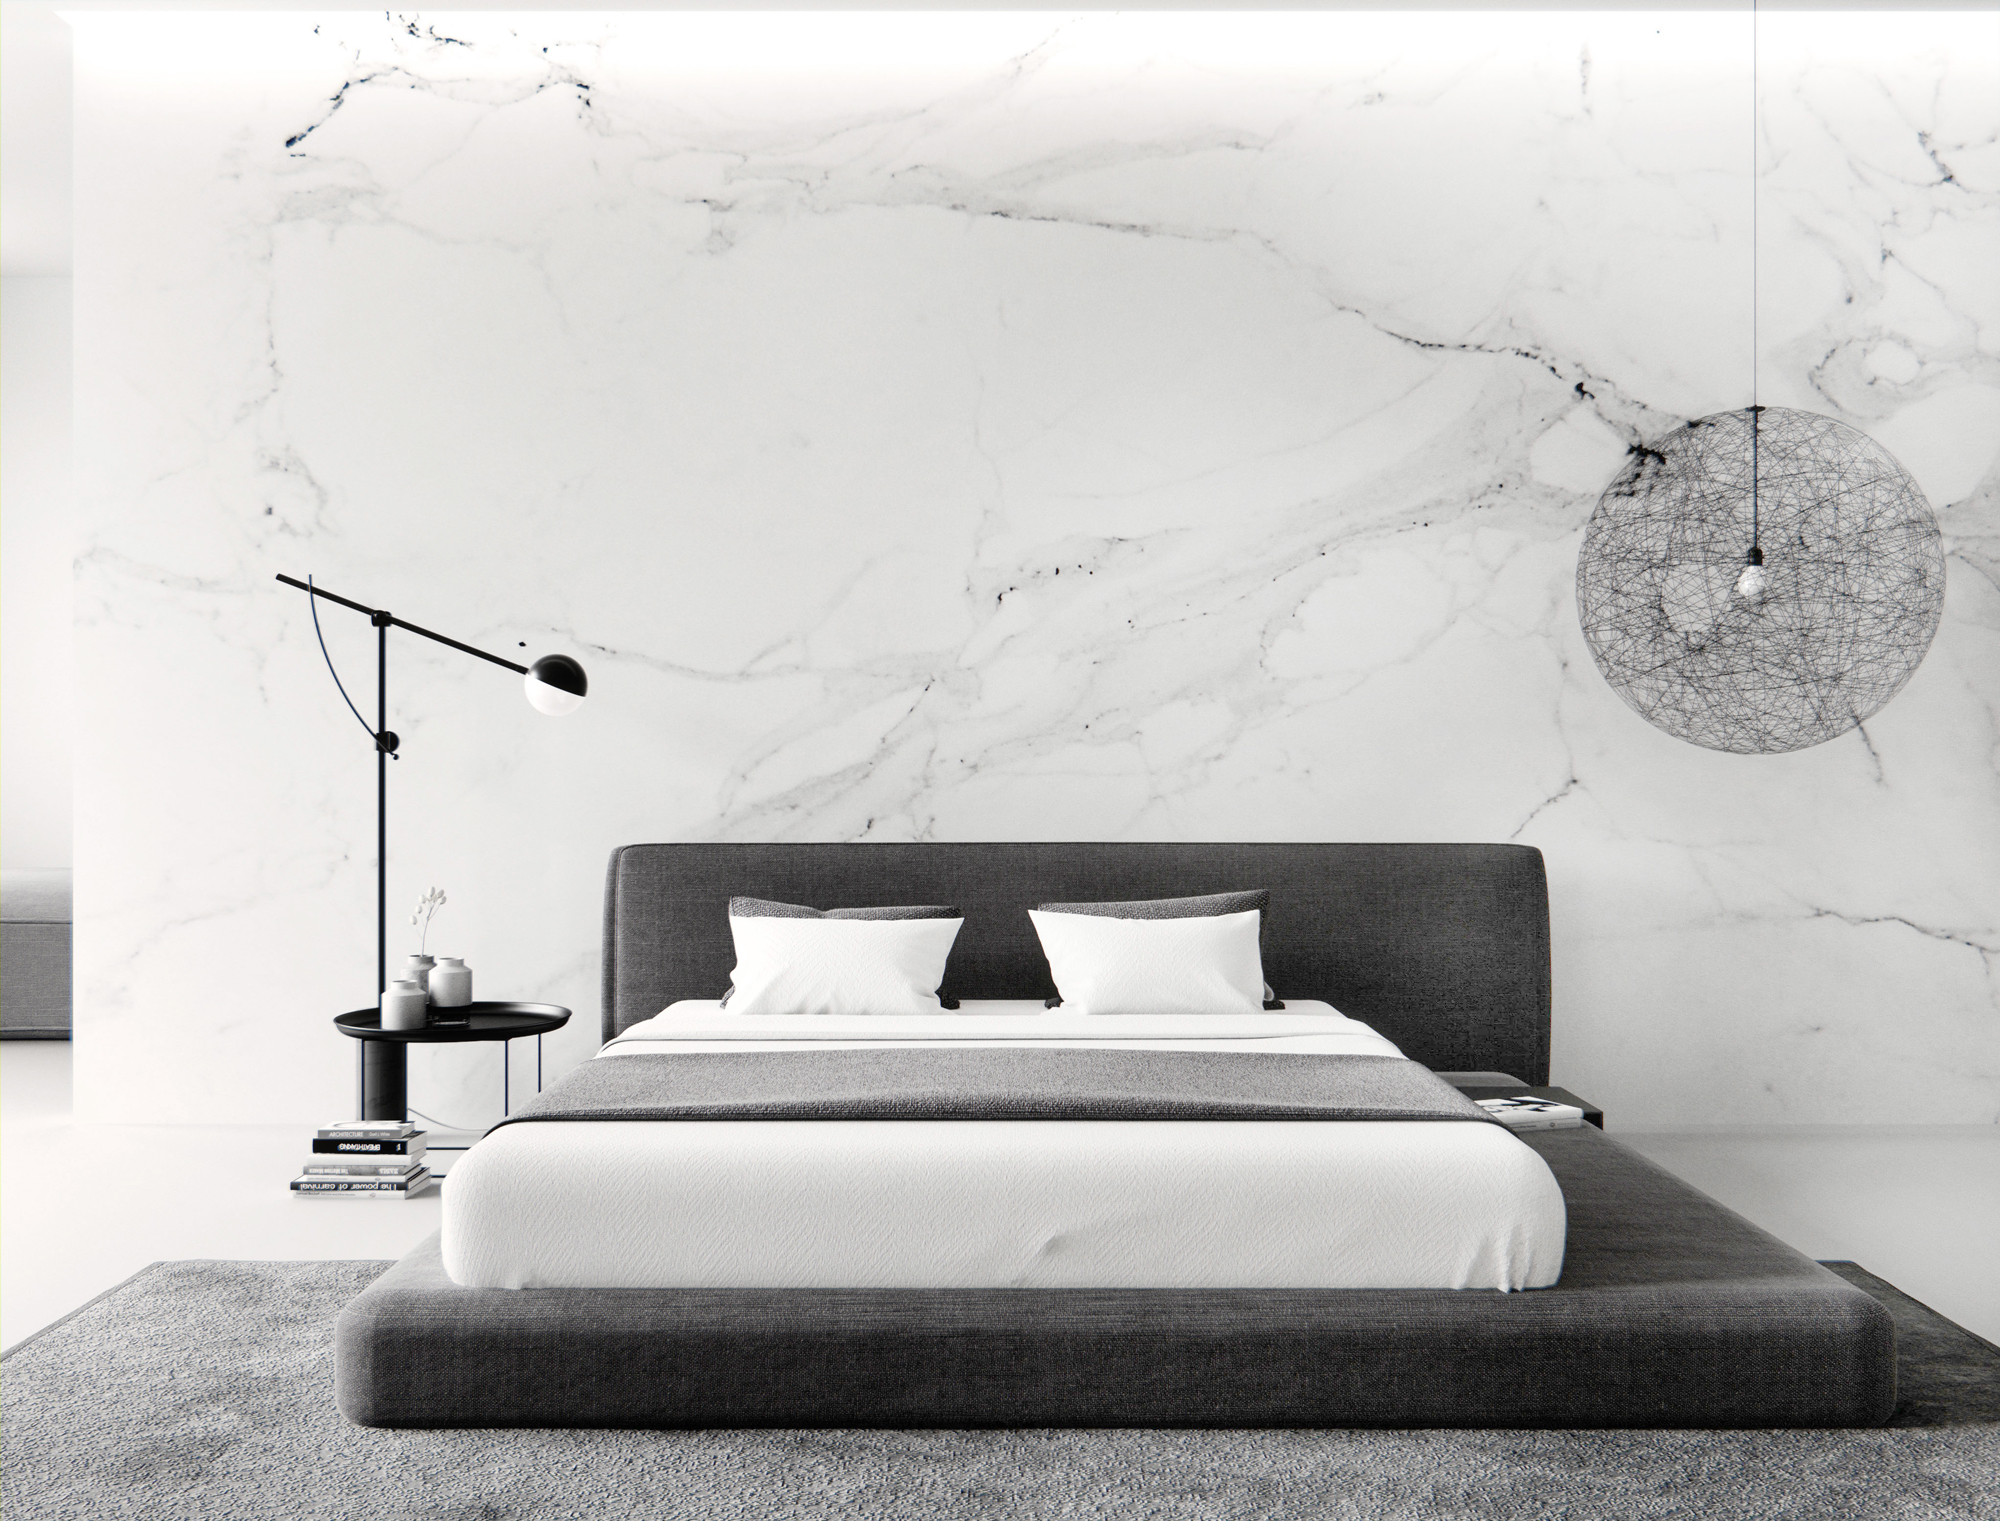 Bedroom Ideas  52 Modern Design Ideas for your Bedroom   The LuxPad mike gauza bedroom decorating ideas